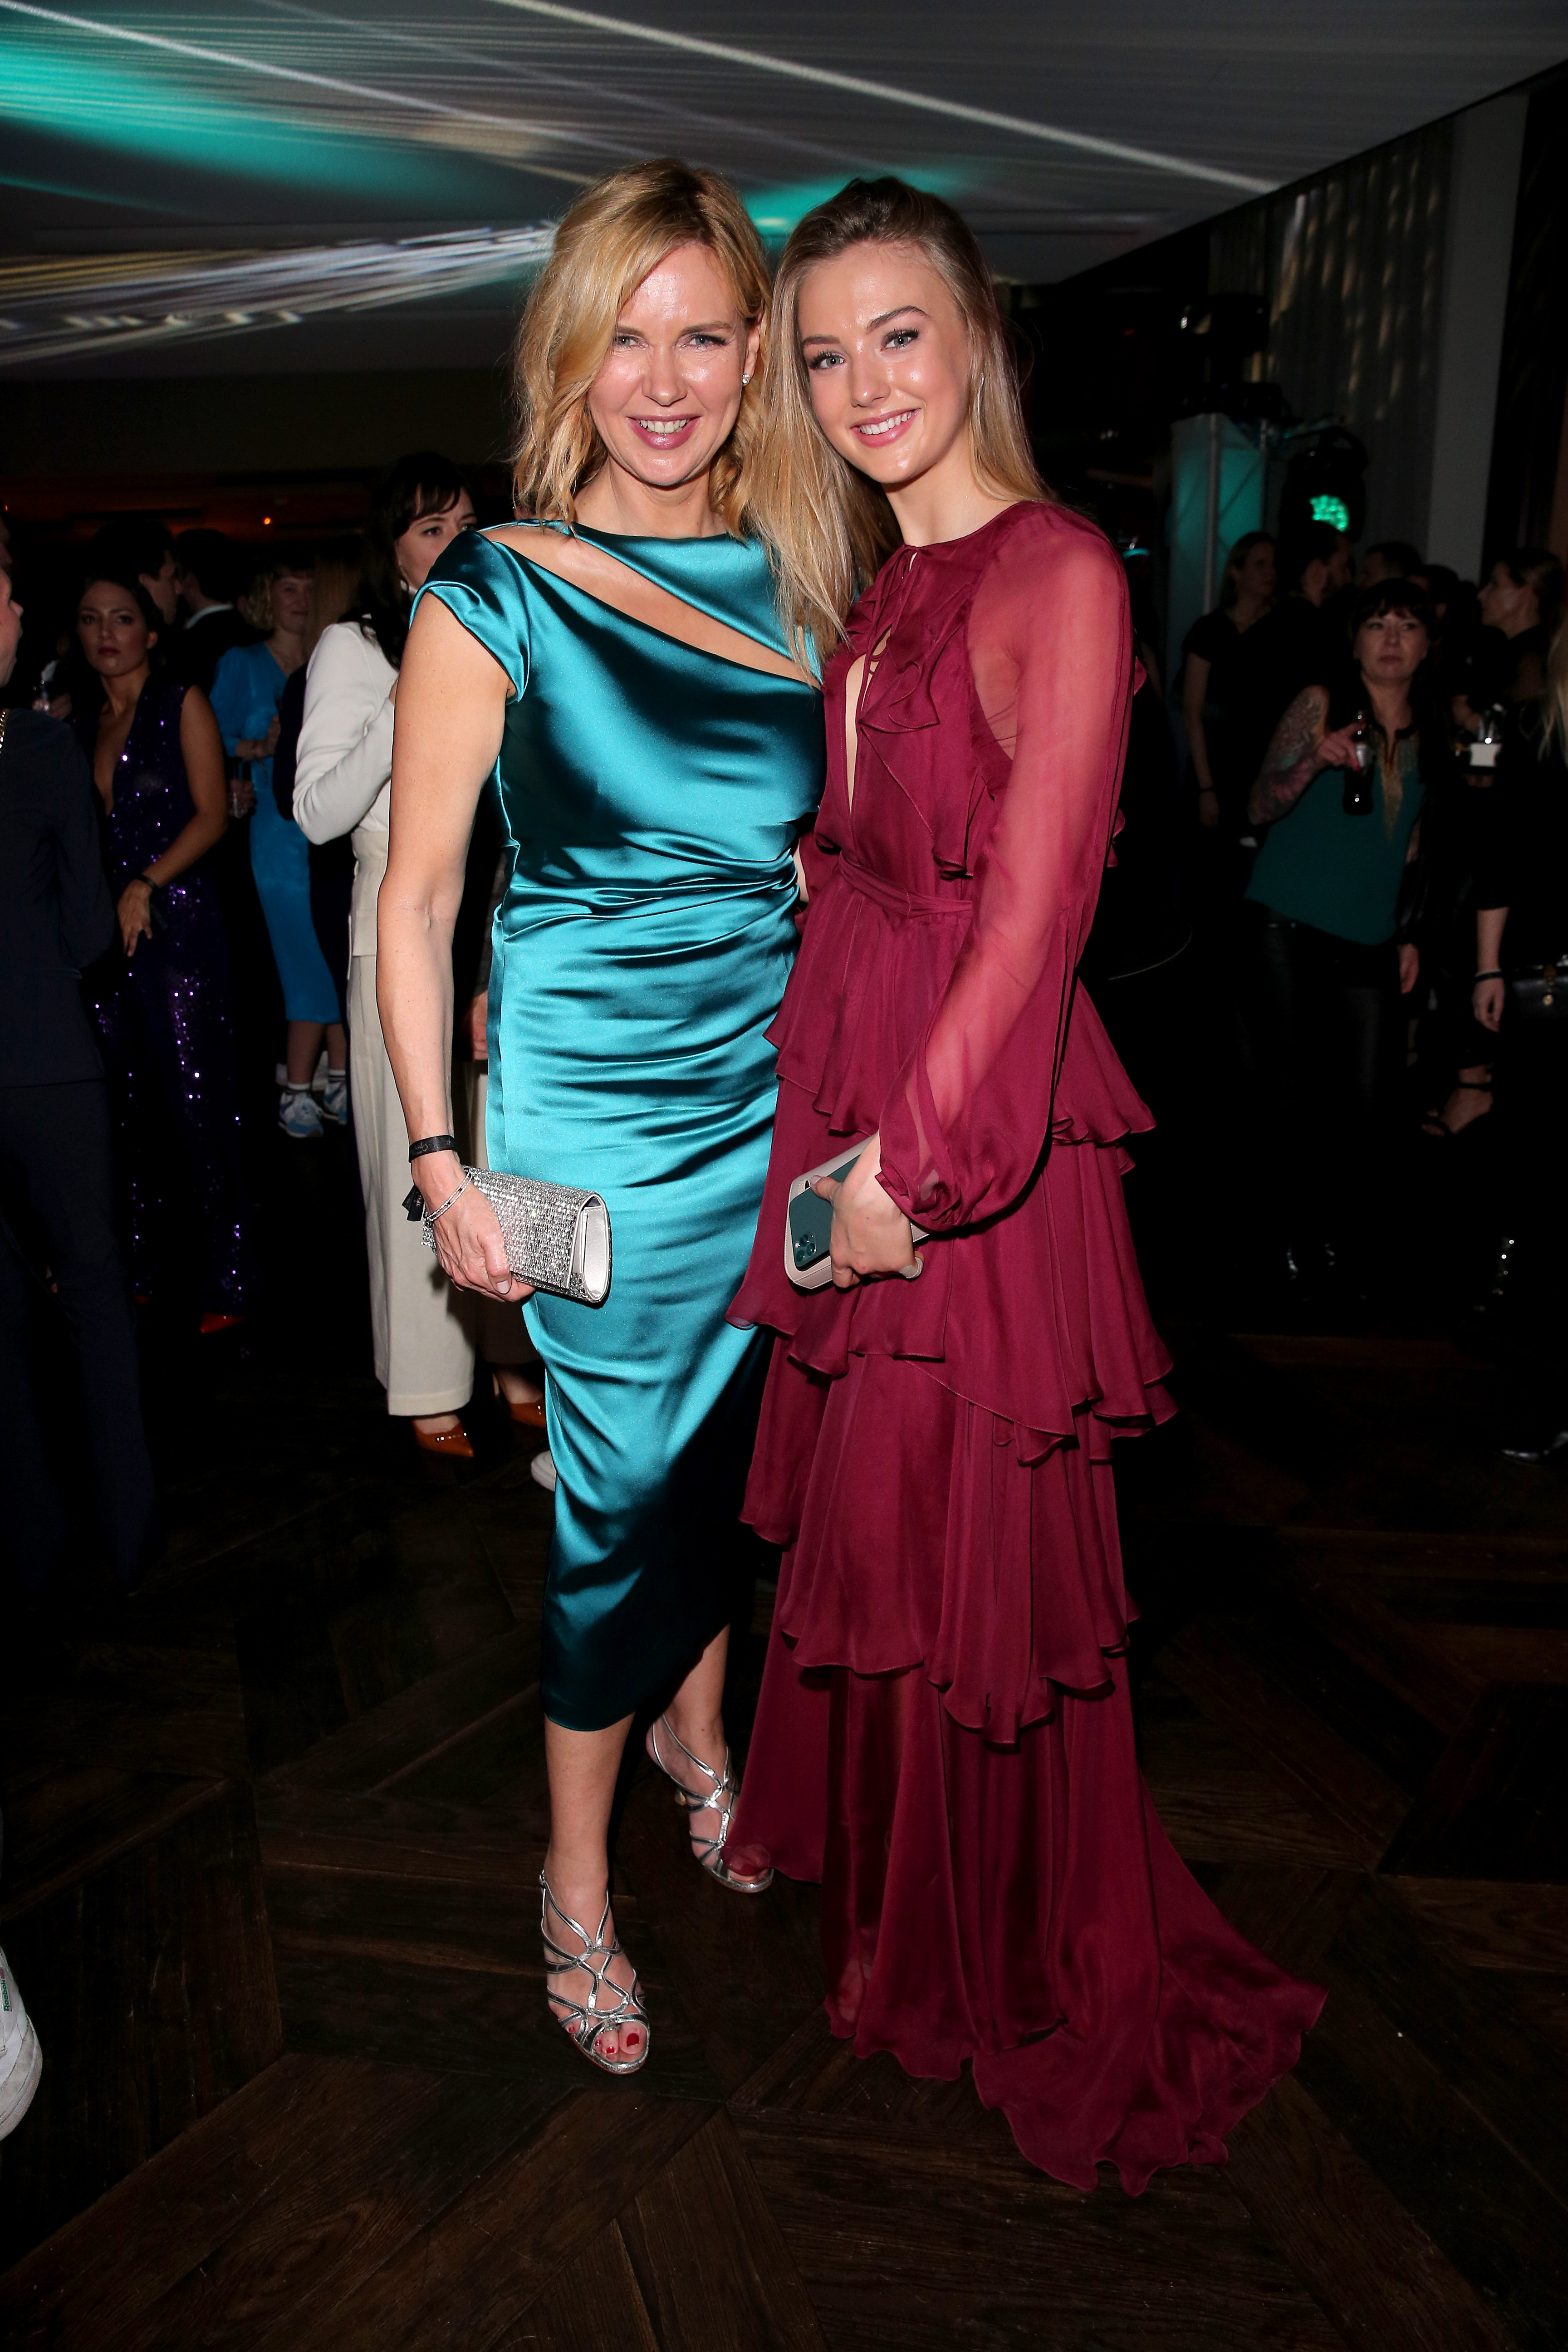 """BERLIN, GERMANY - FEBRUARY 20: (L-R) Veronica Ferres and her daughter Lilly Krug attend the Berlin Opening Night by Bertelsmann Content Alliance at hotel """"Das Stue""""  on February 20, 2020 in Berlin, Germany. (Photo by Gisela Schober/ Bertelsmann Content Alliance)"""